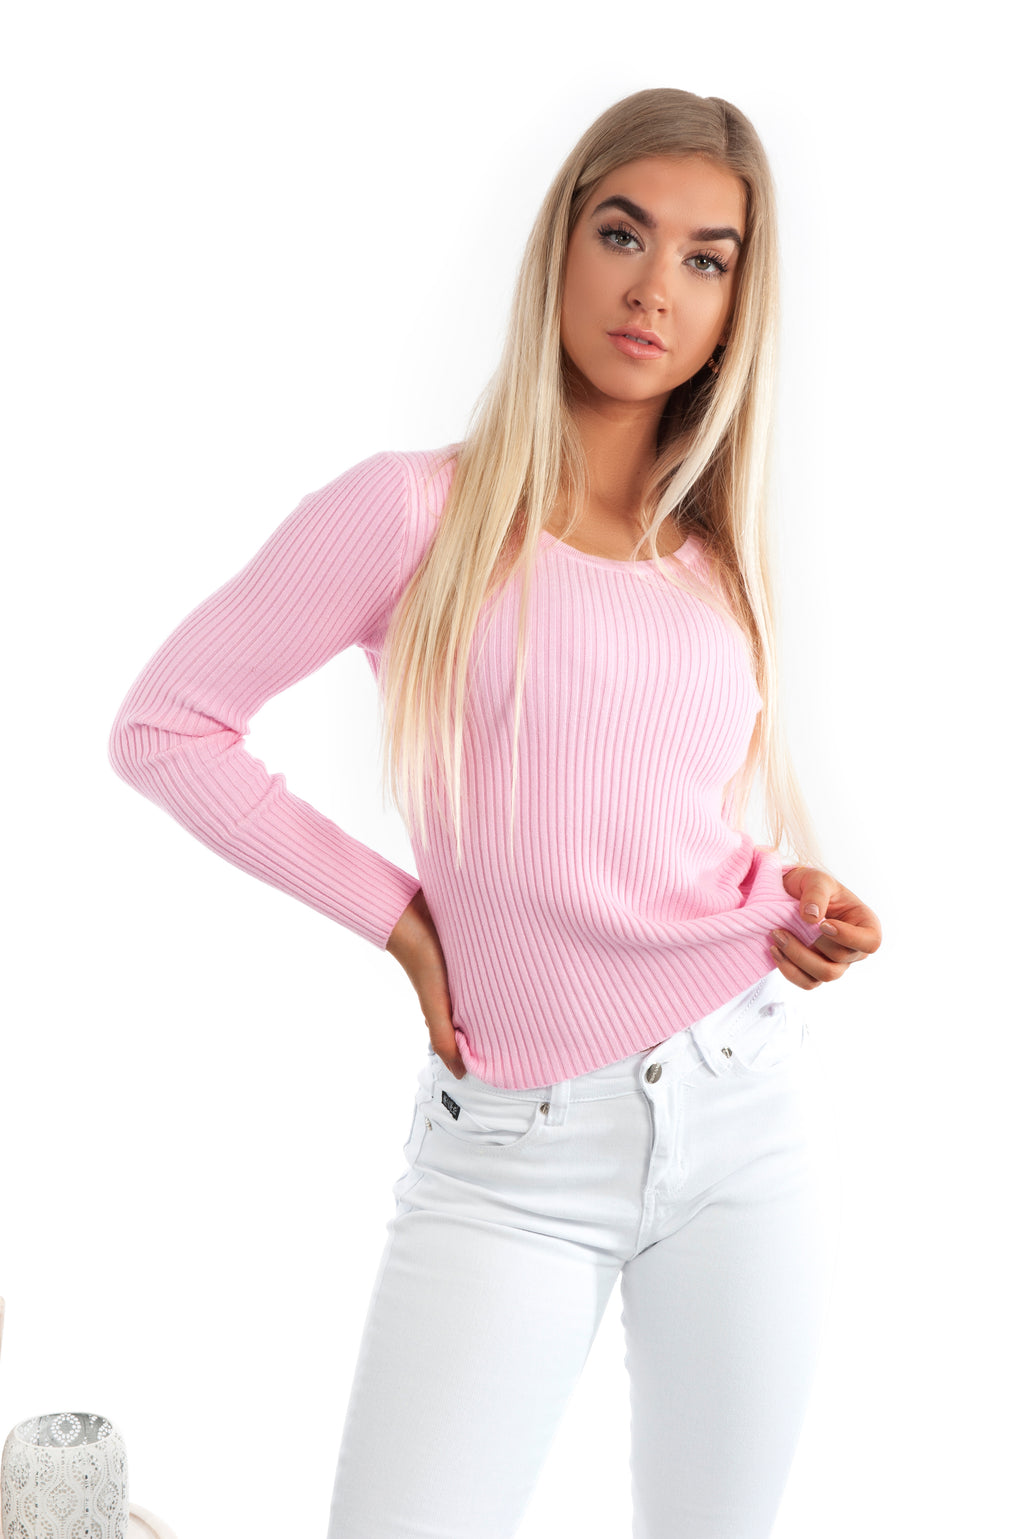 Erika Knit Top - Pink - Islandlace